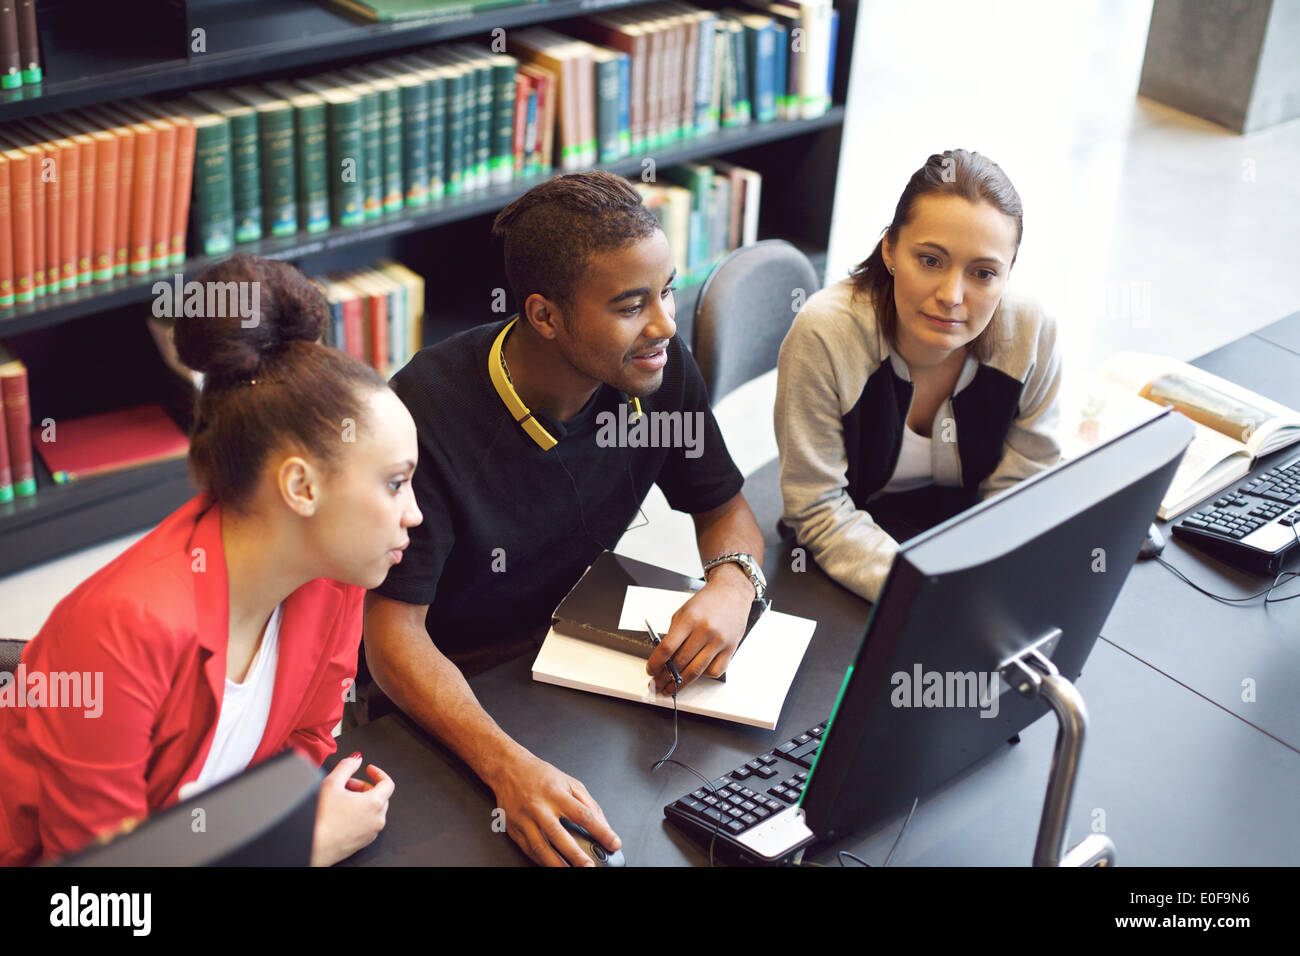 Three young university students studying in library using computer. Young people sitting at table with books finding information - Stock Image